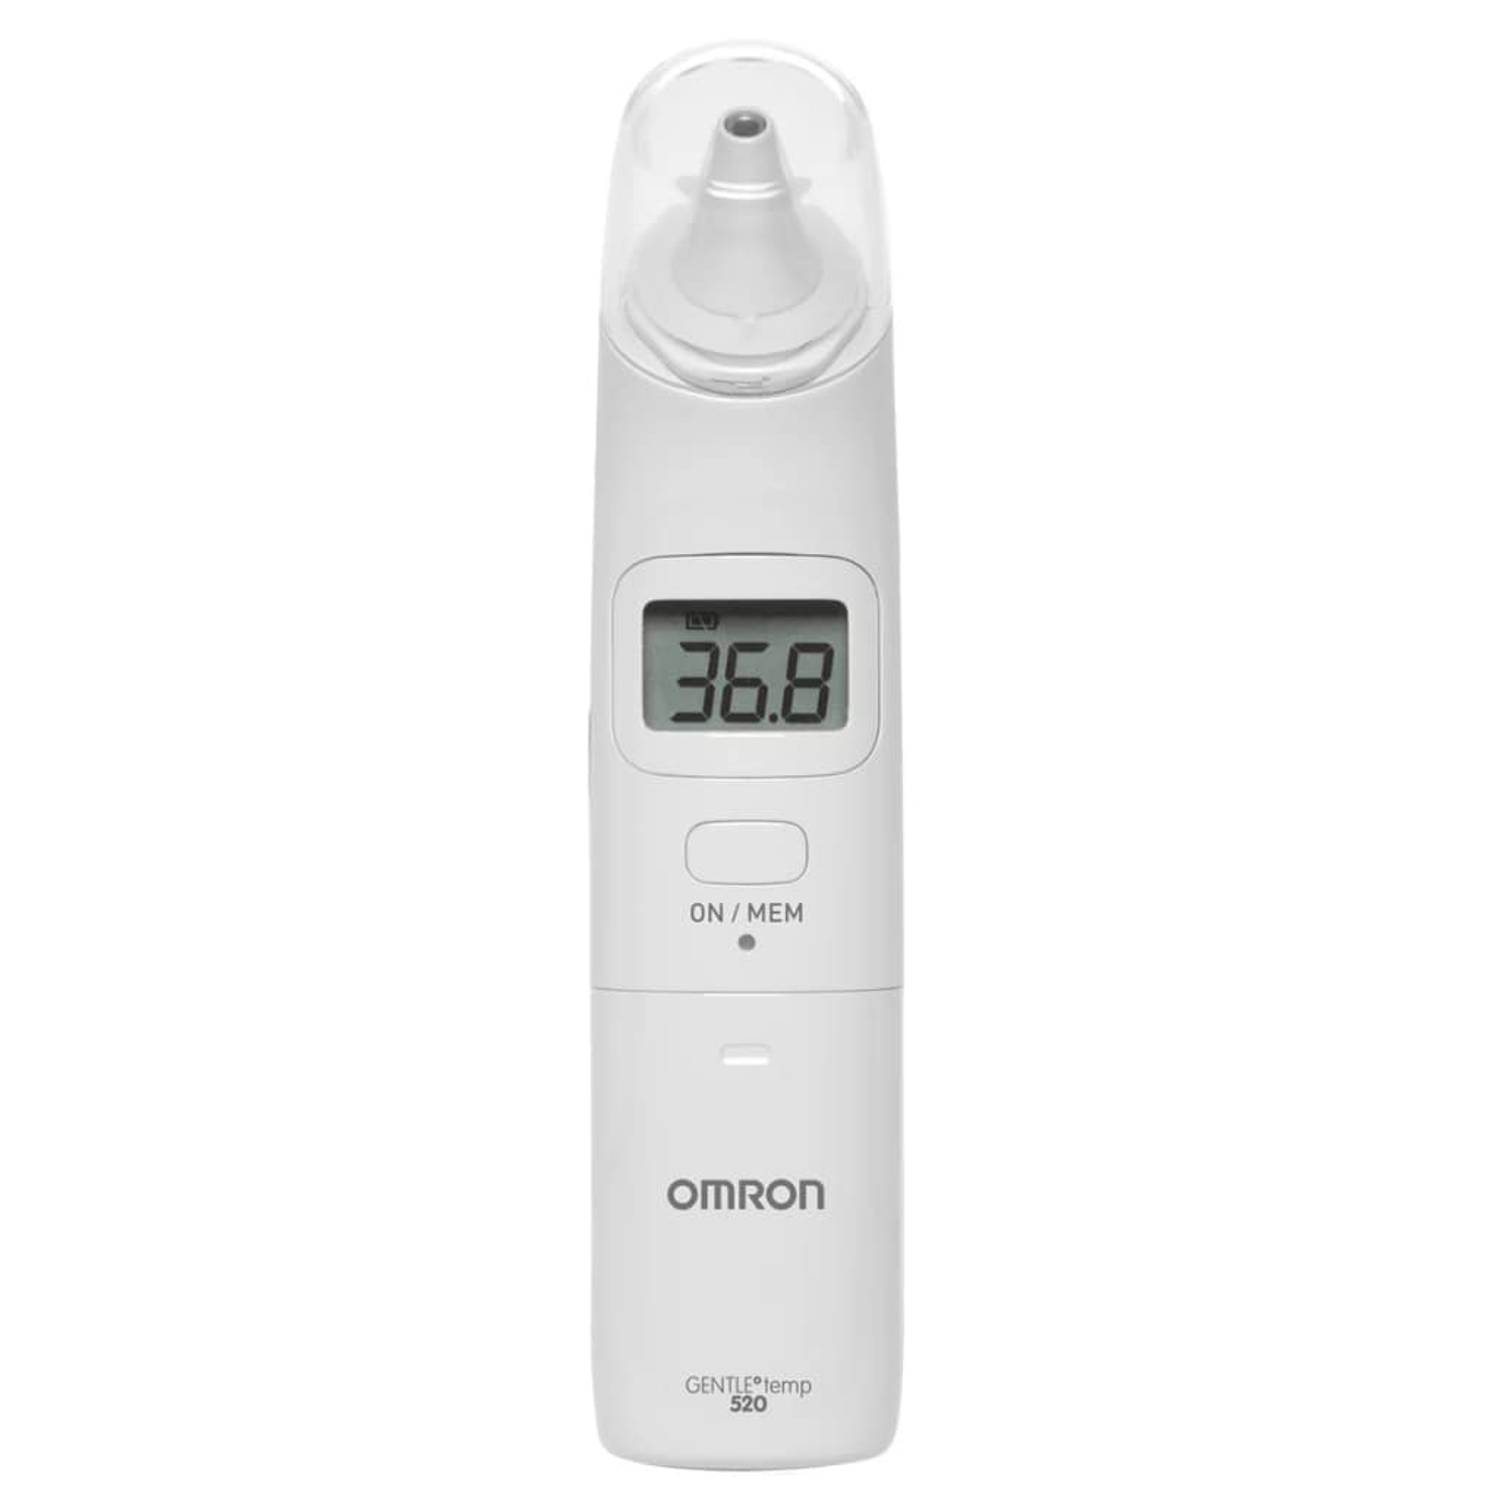 Omron Oorthermometer Gentle Temp 520 OMR-MC-520-E